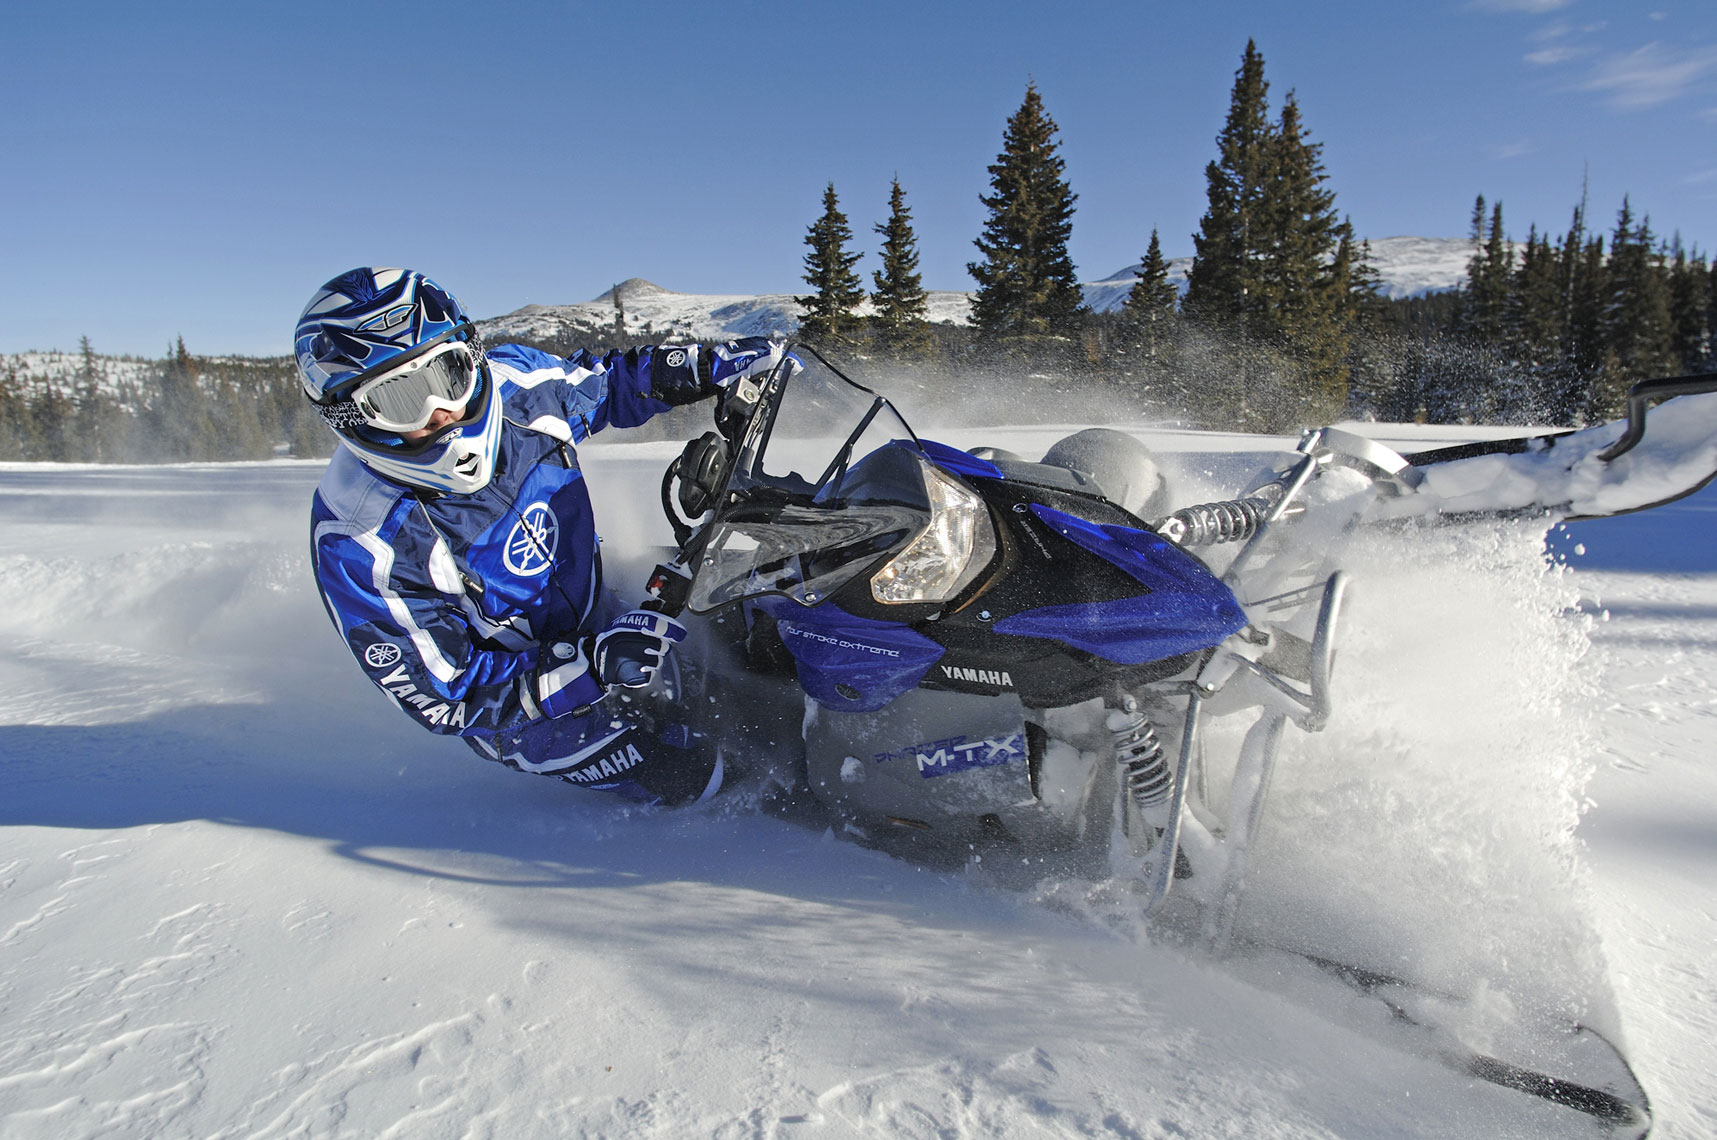 Snowmobile-Photography-by-Kort-Duce-223